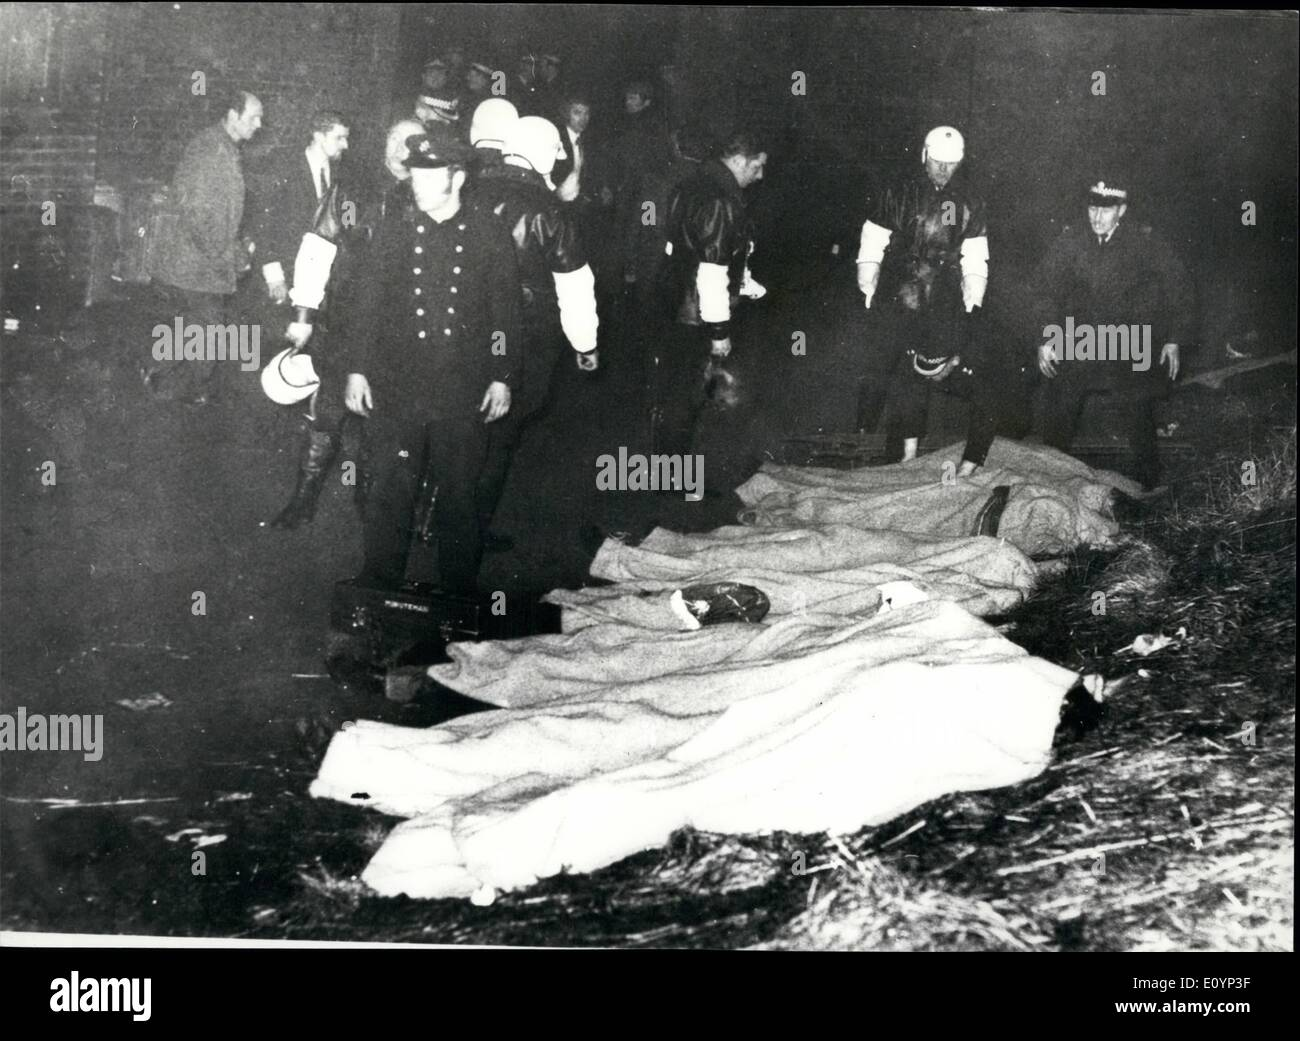 Jan. 01, 1971 - 66 Die In The Worst Disaster In The History Of British Football At Ibrox Park In Glasgow: 66 fans were killed and another 108 were in hospital early today after Britain's worst-ever soccer disaster. It happened yesterday at Ibox Park, Glasgow, after the traditional New Year game between Glasgow Rangers and Celtic. As the 80,000 fans were leaving the ground somebody fell on the sloping exit terracing, others fell on top and it snowballed until a crush barrier collapsed, and most of those who died were trampled on and suffocated - Stock Image